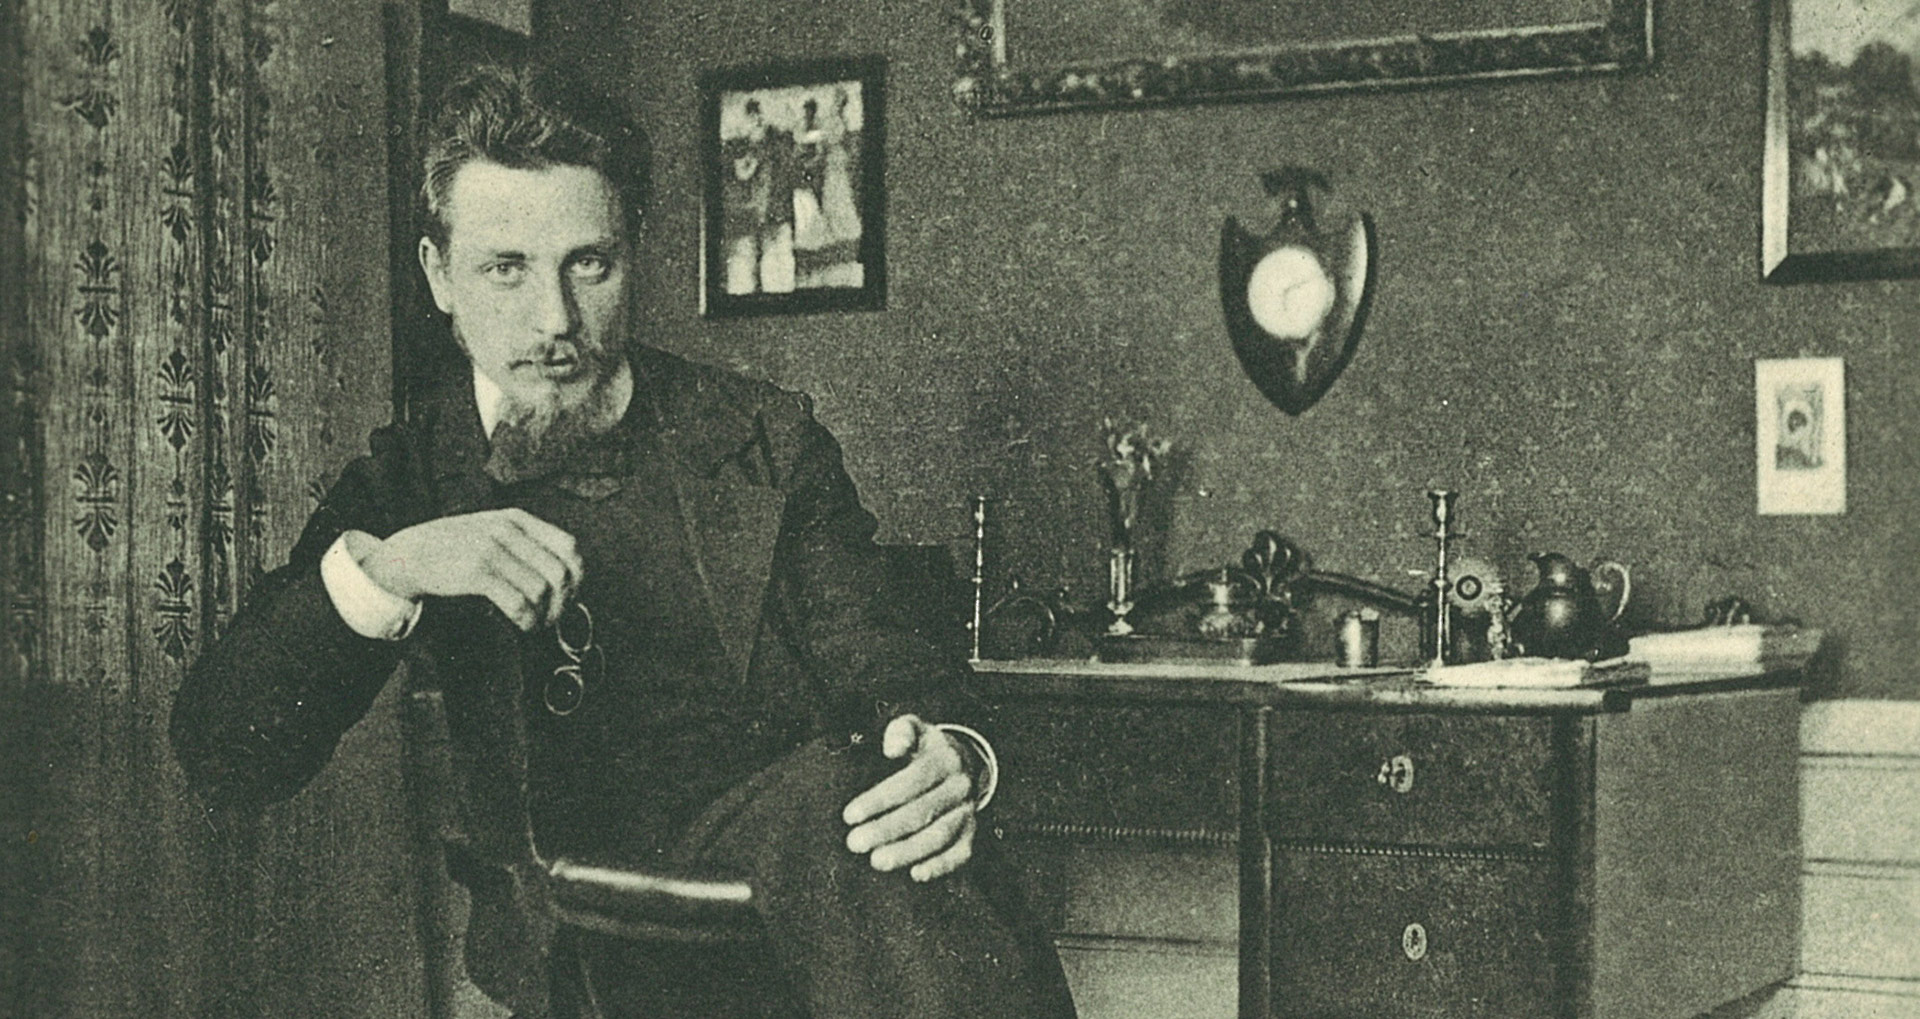 A photo of Rainer Maria Rilke in Westerwede, dated 1901.